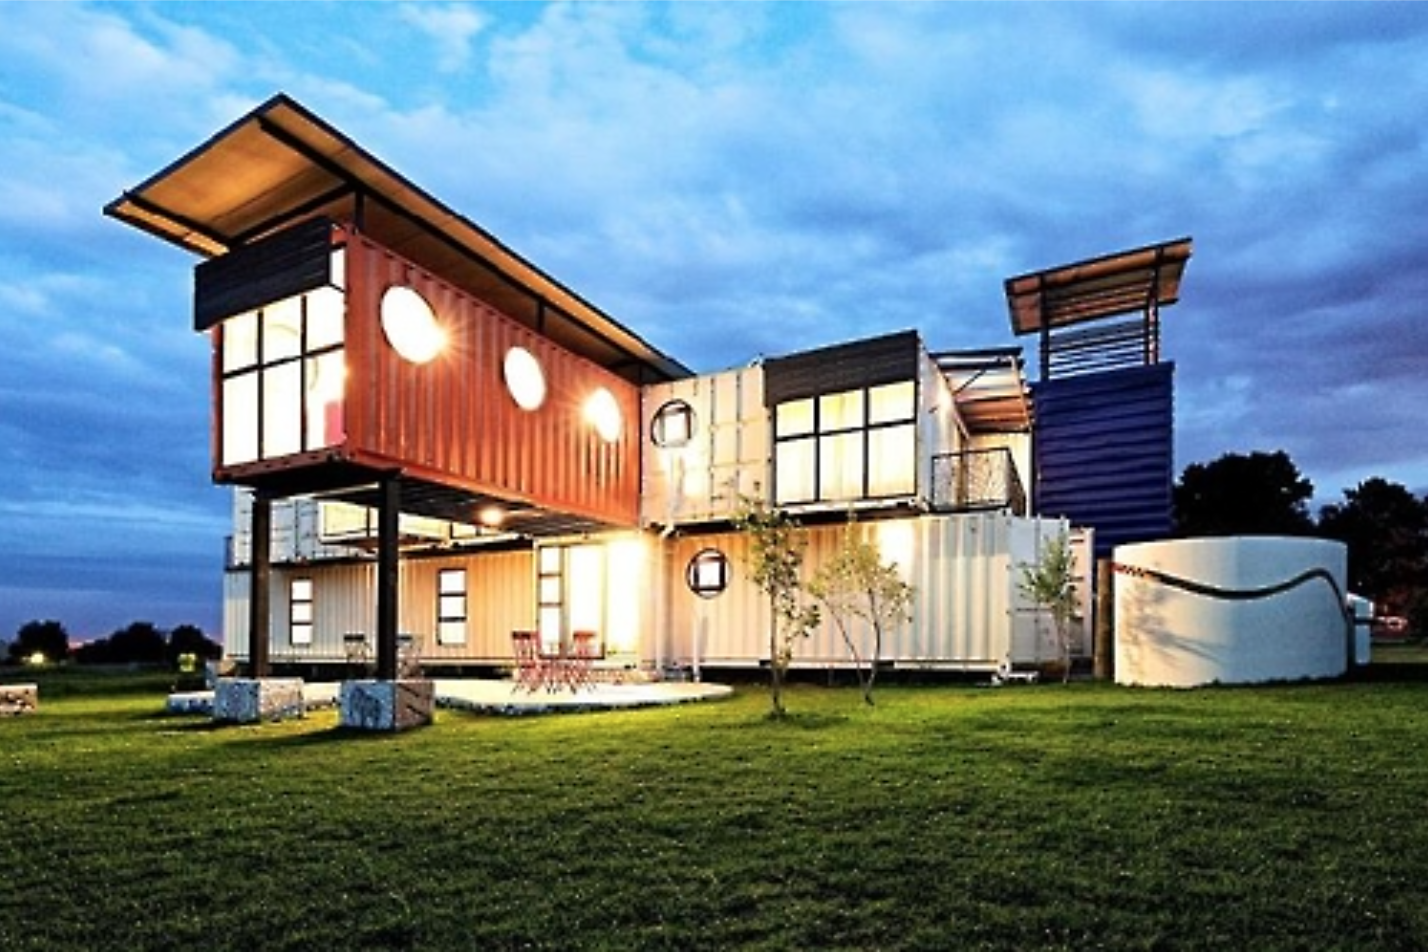 Modular house made using shipping containers.